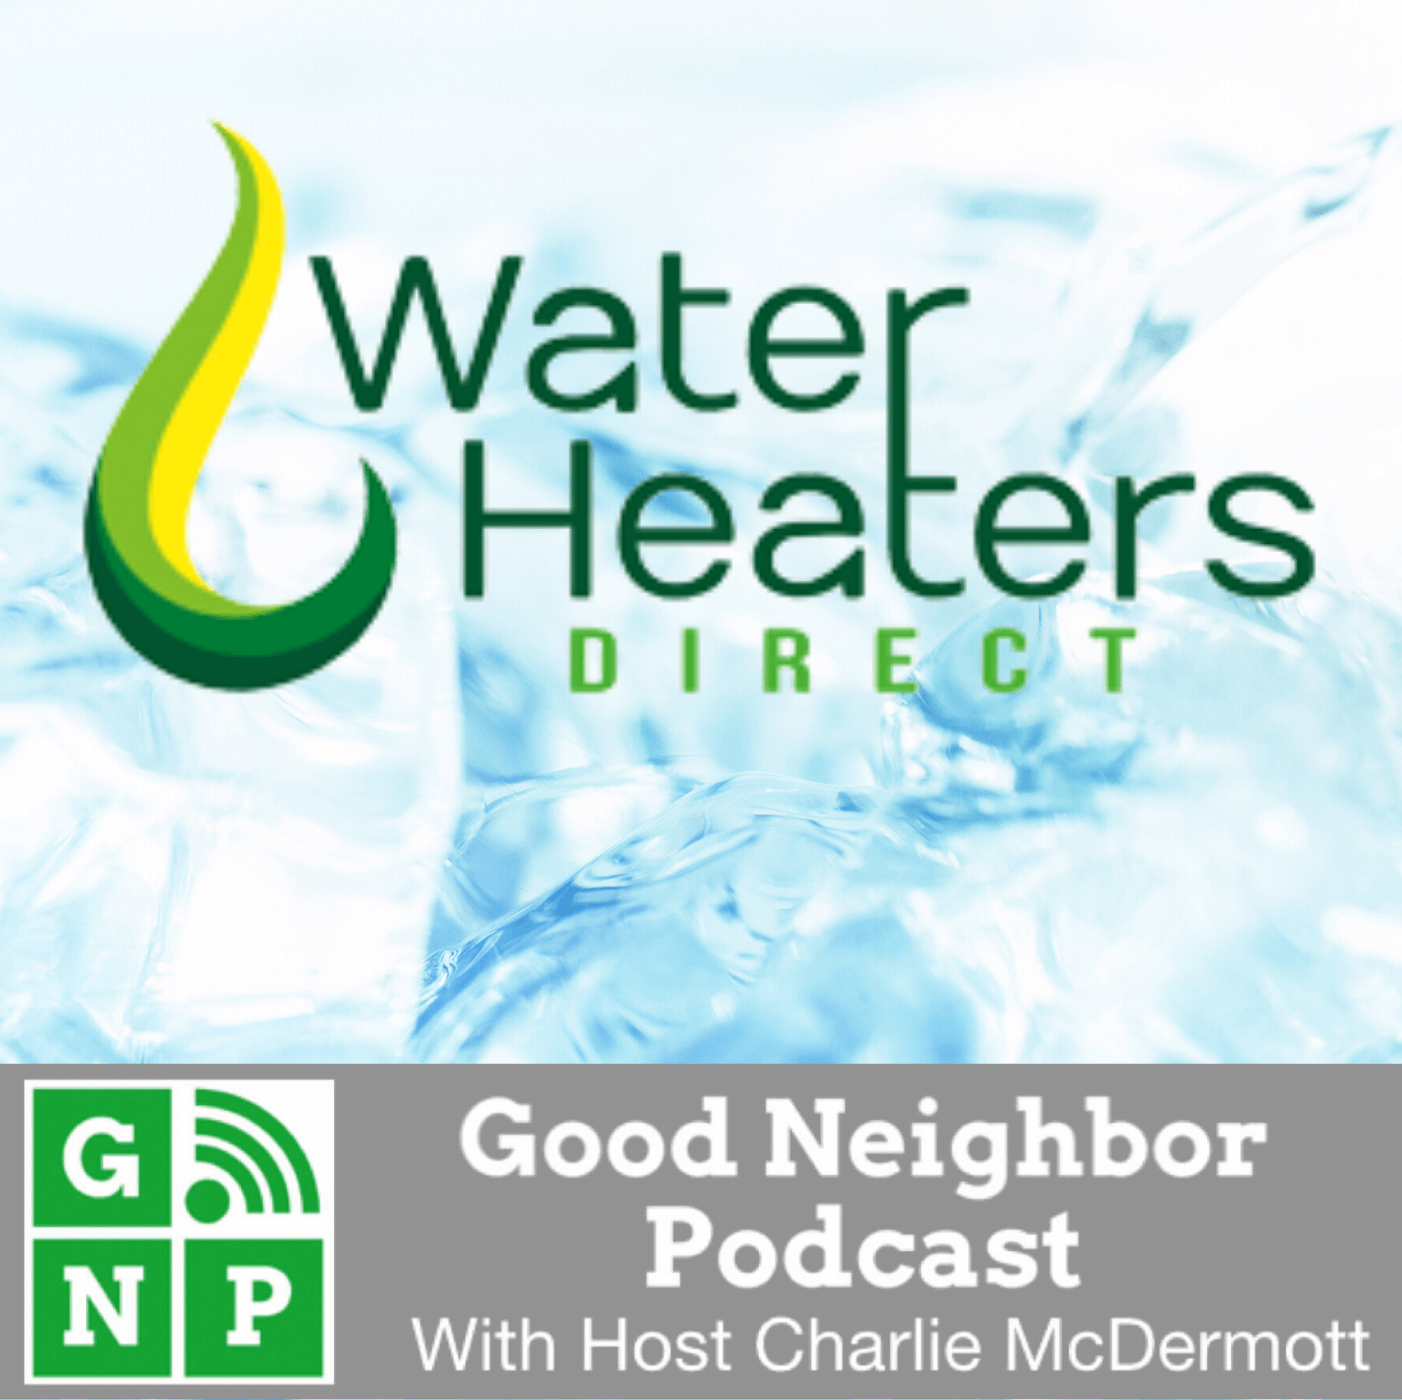 _GNP - Water Heaters Direct - BADGE